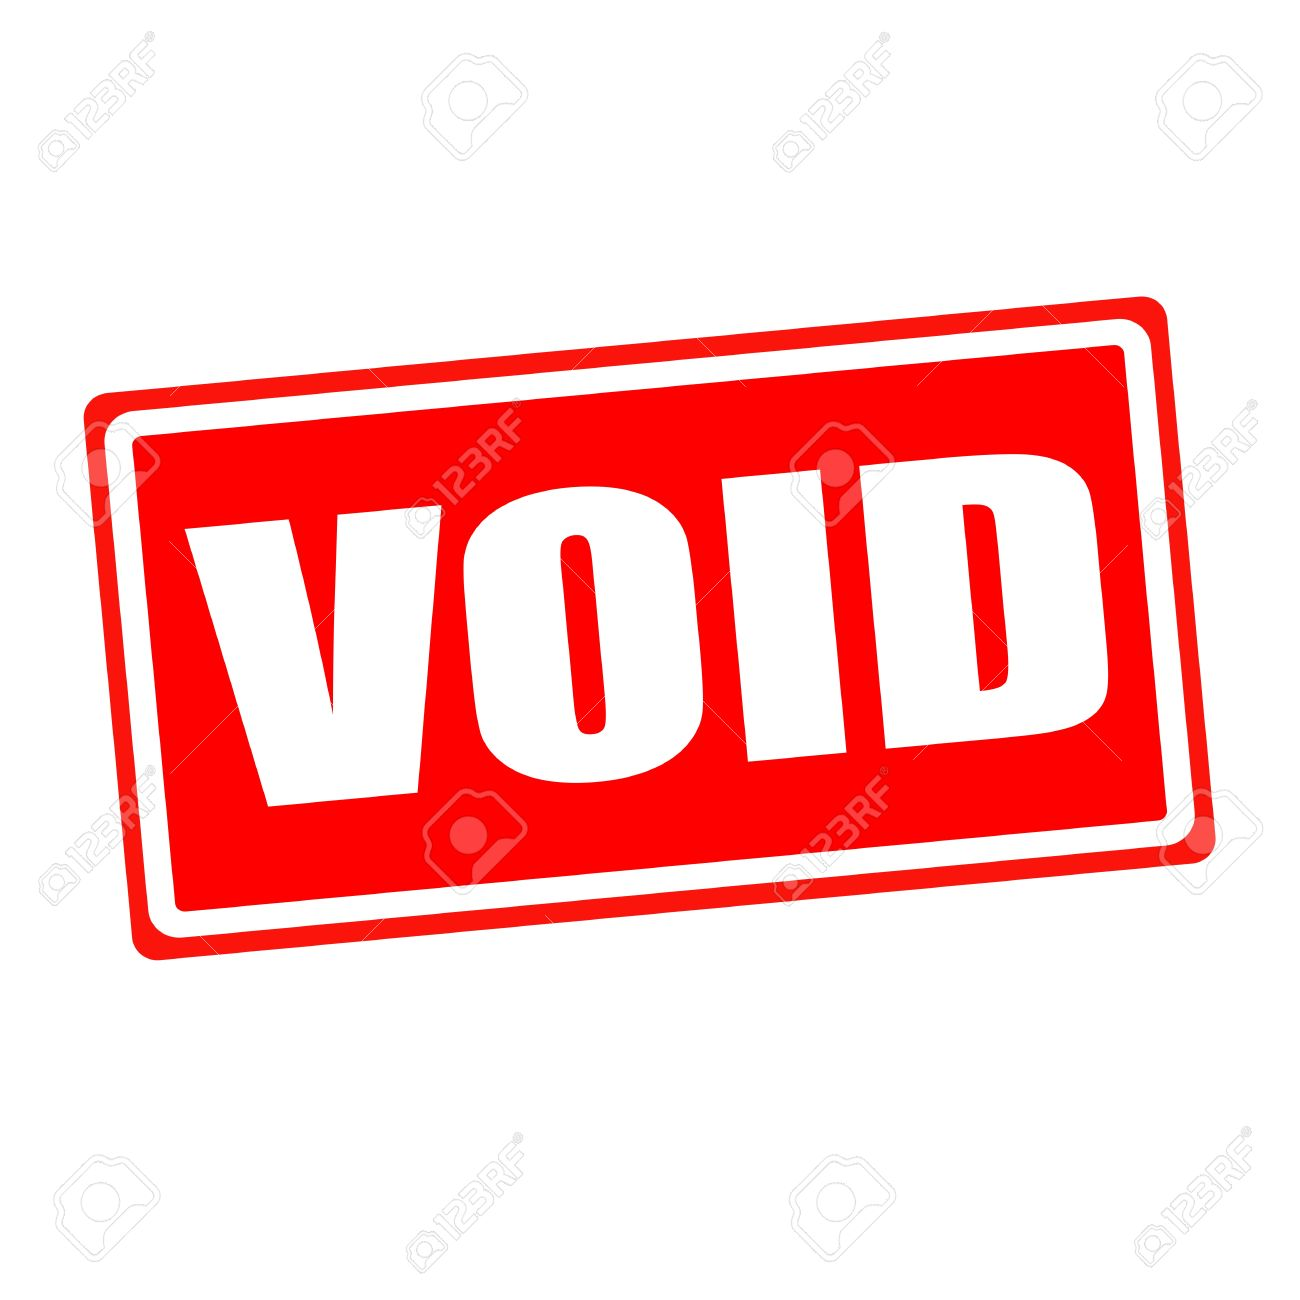 Null and void clipart - Clipground